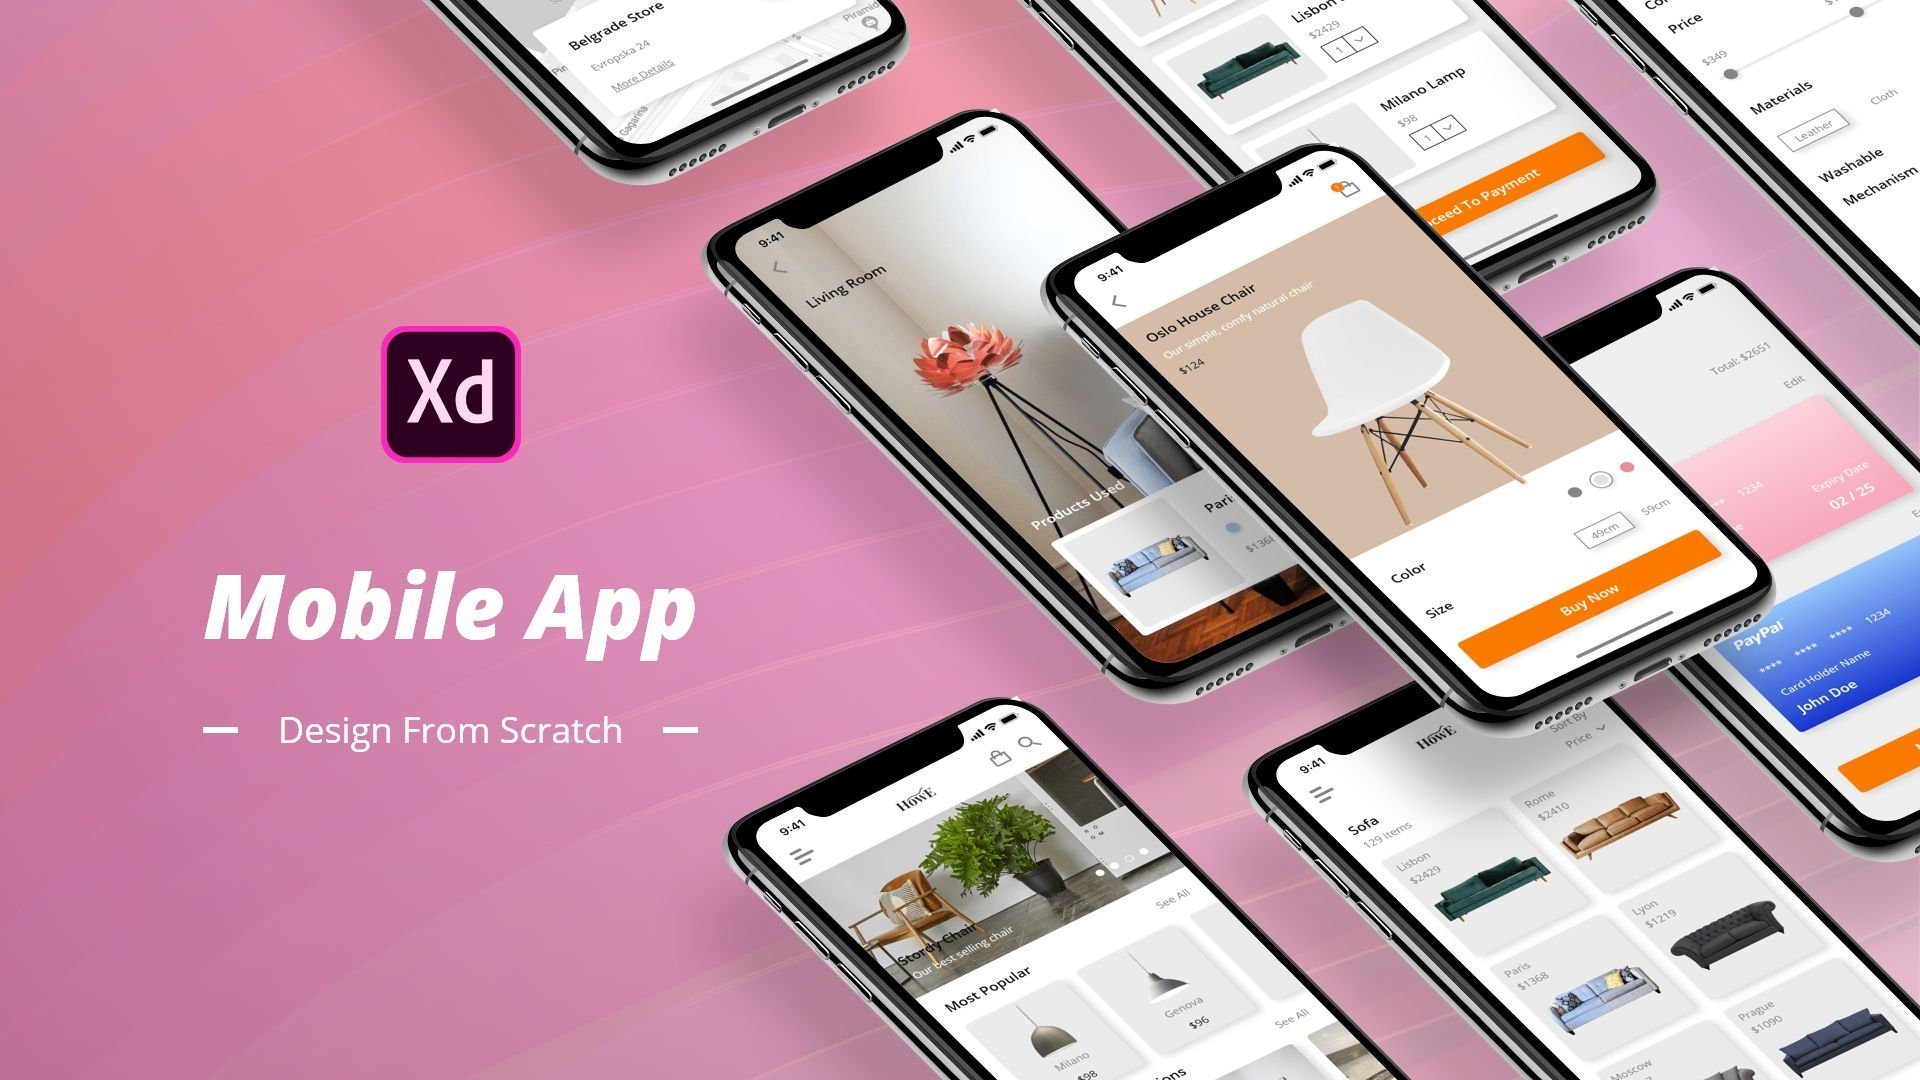 Mobile App Design From Scratch In Adobe Xd